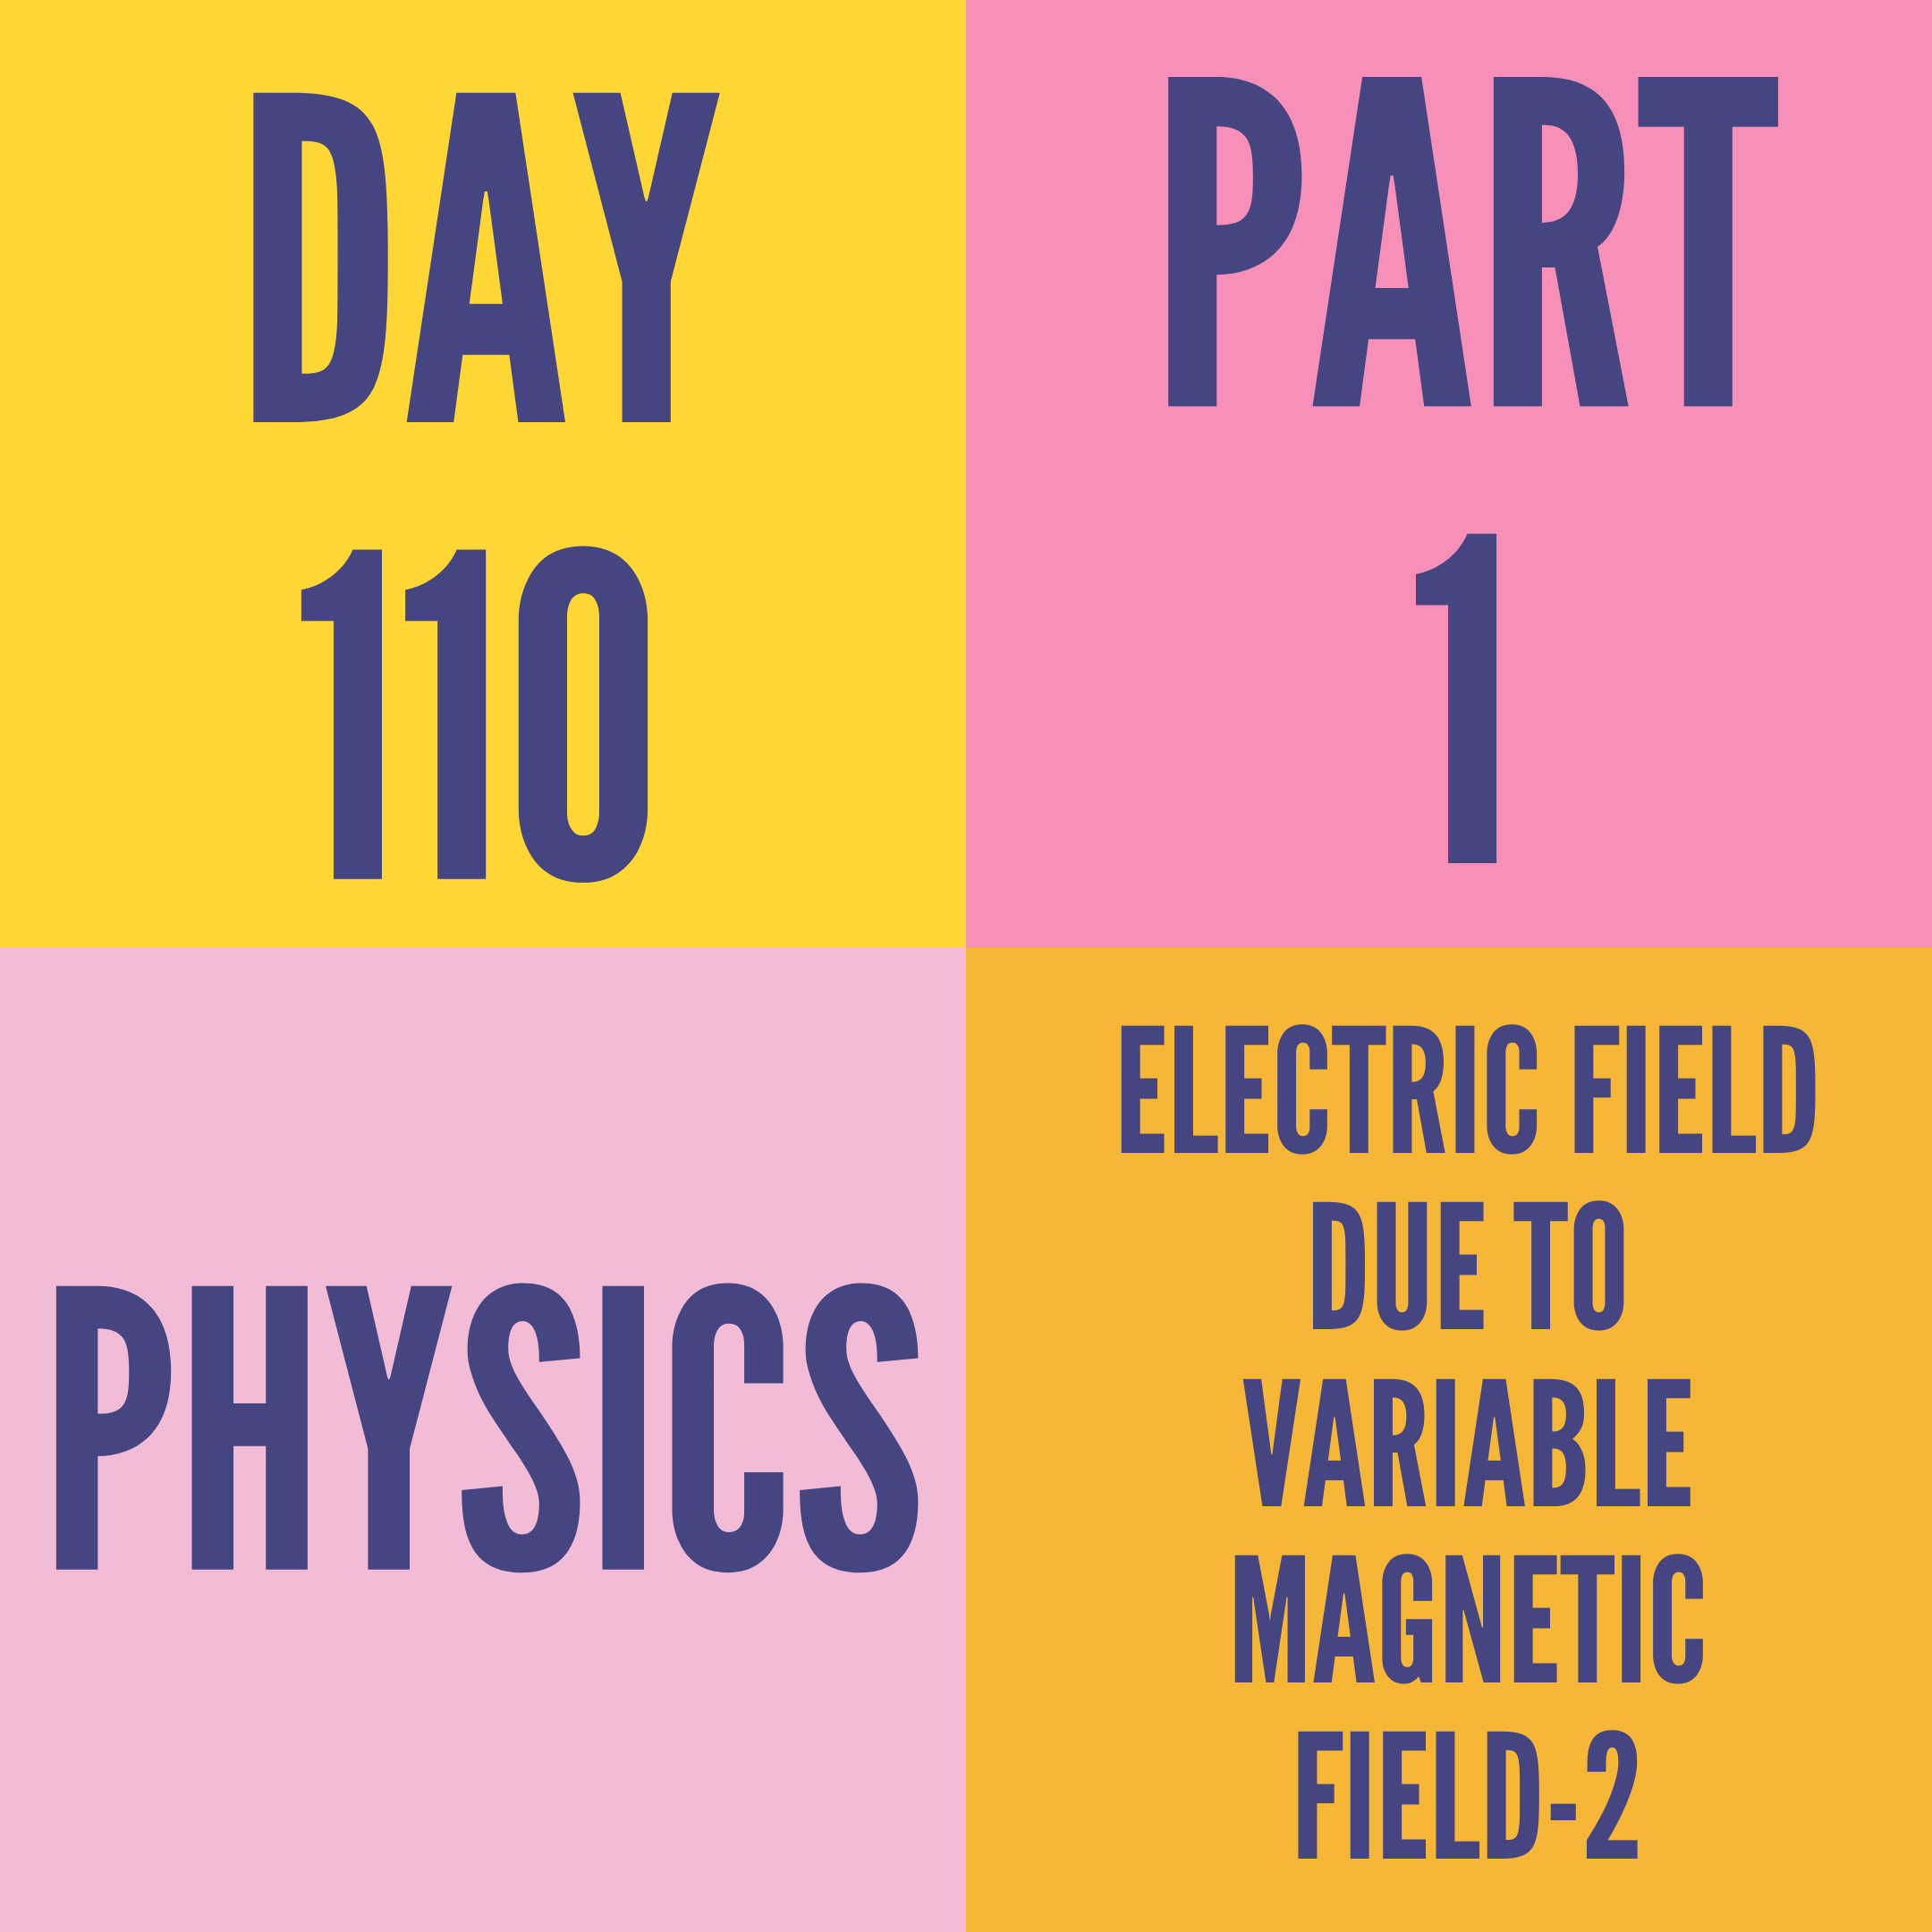 DAY-110 PART-1 ELECTRIC FIELD DUE TO VARIABLE MAGNETIC FIELD-2